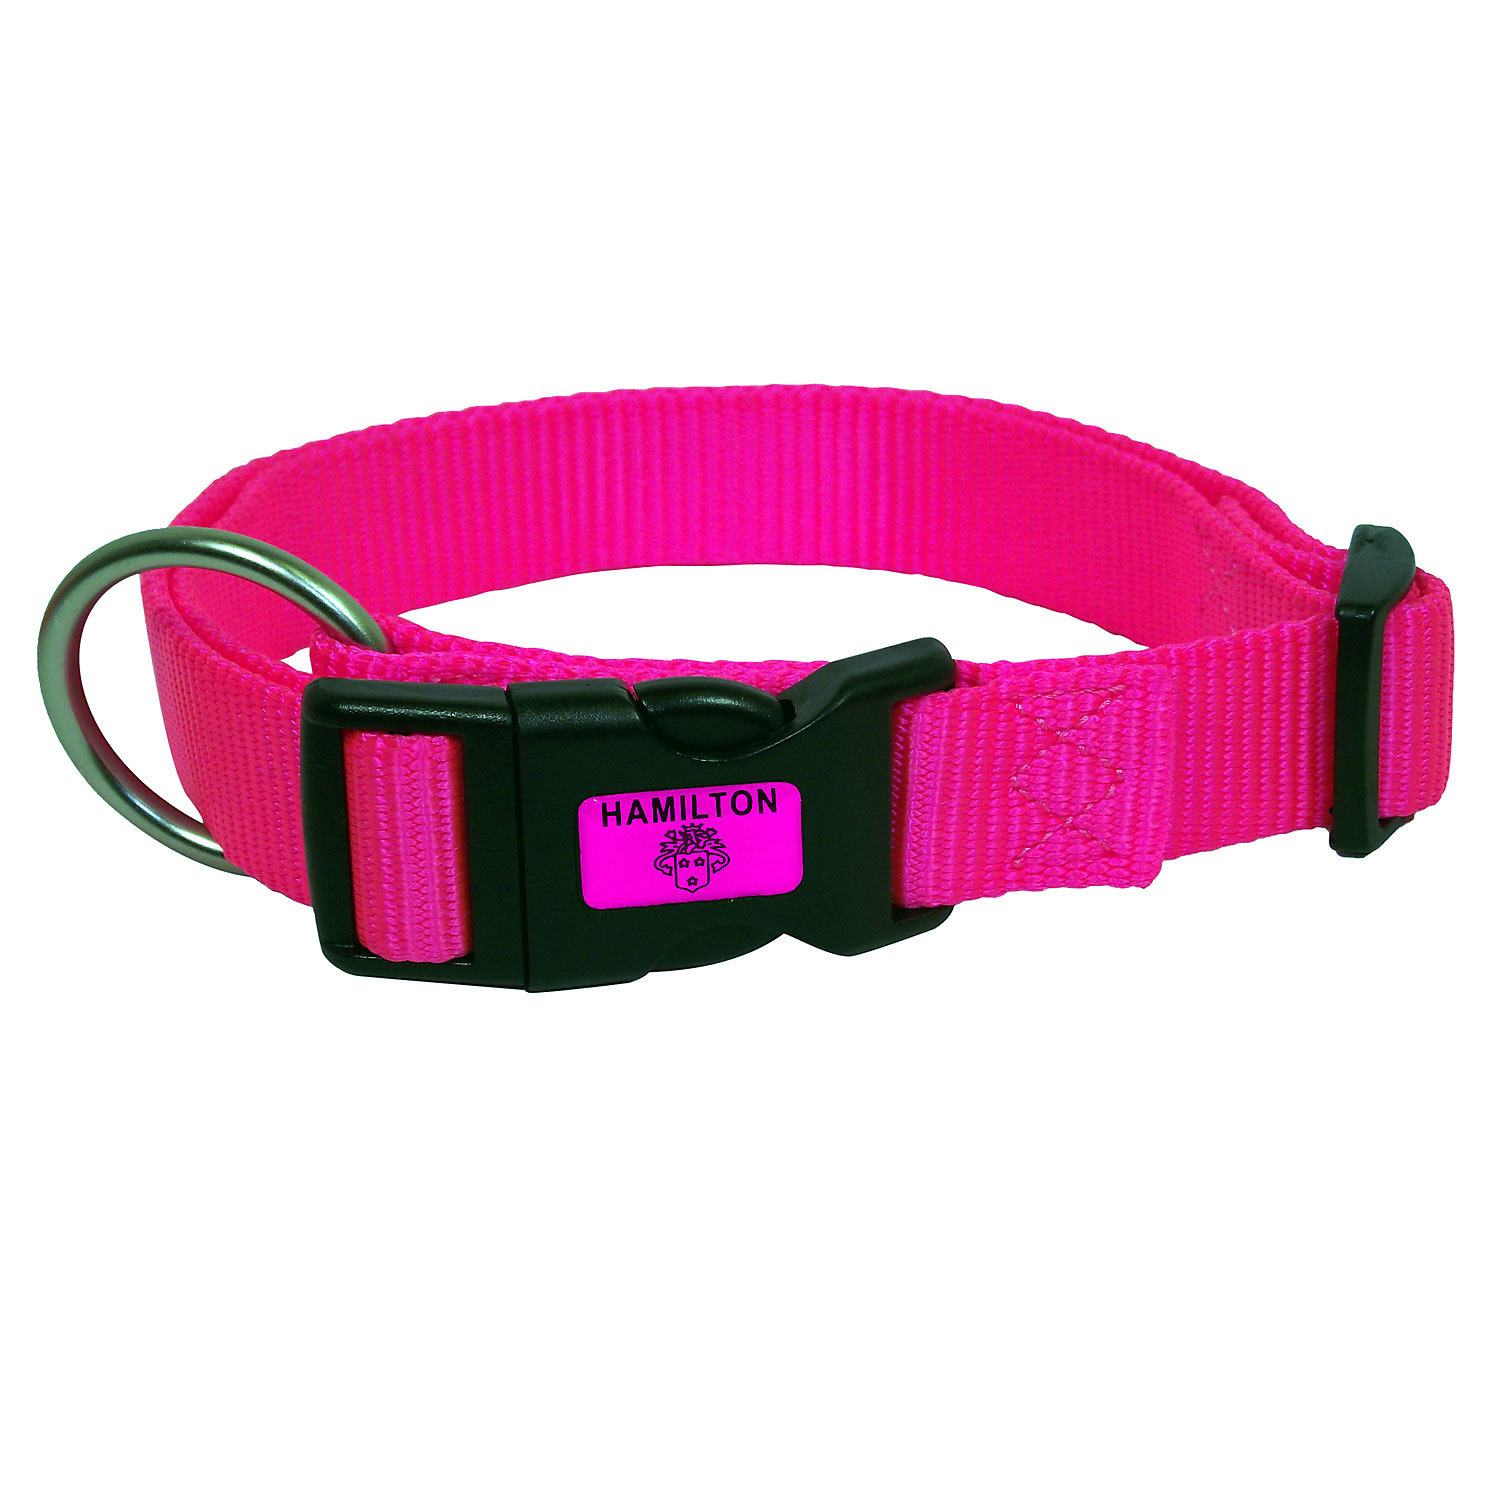 Hamilton Adjustable Nylon Dog Collar In Pink Large 16 26 L X 1 W